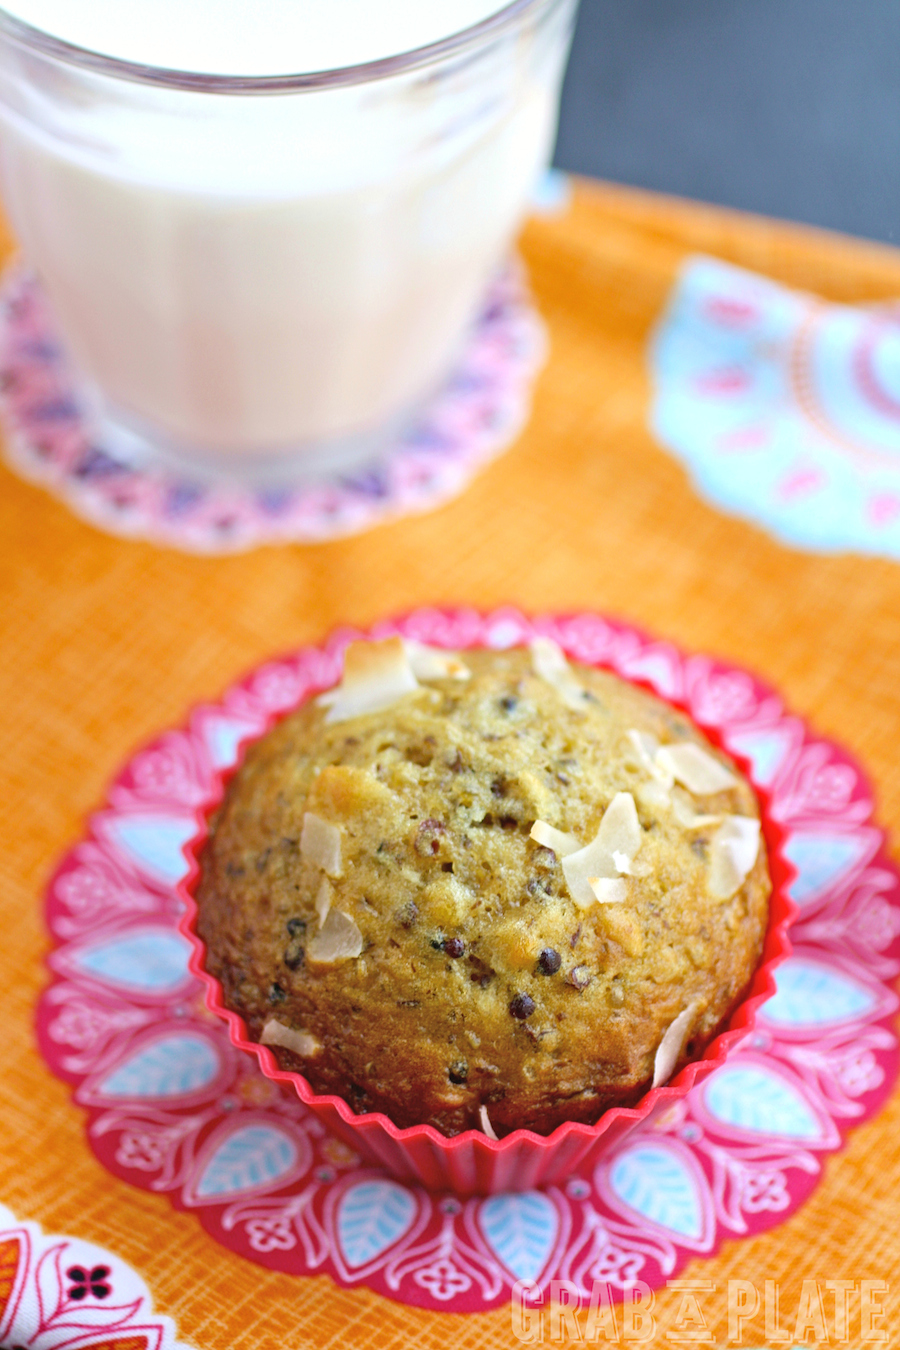 Enjoy these filling and tasty Quinoa, Coconut and Date Muffins